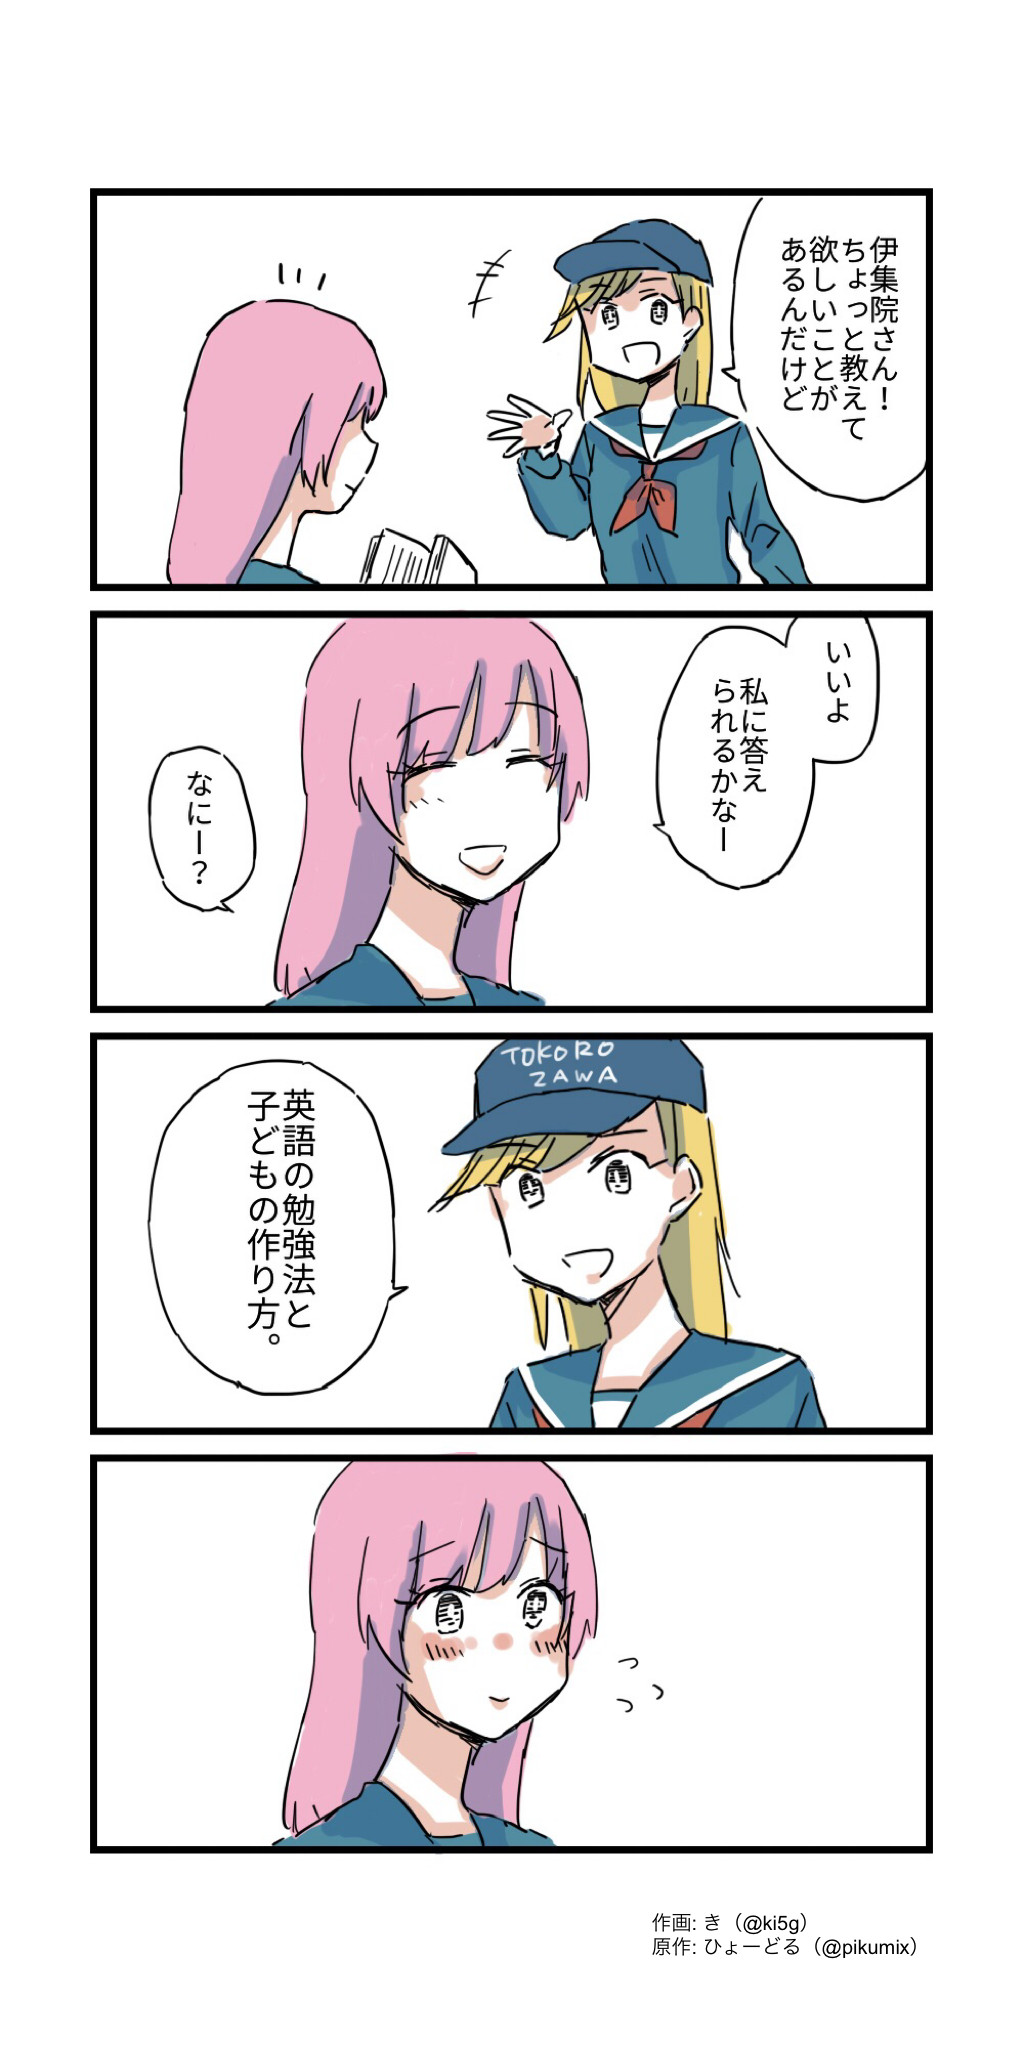 201906091147336b8.png